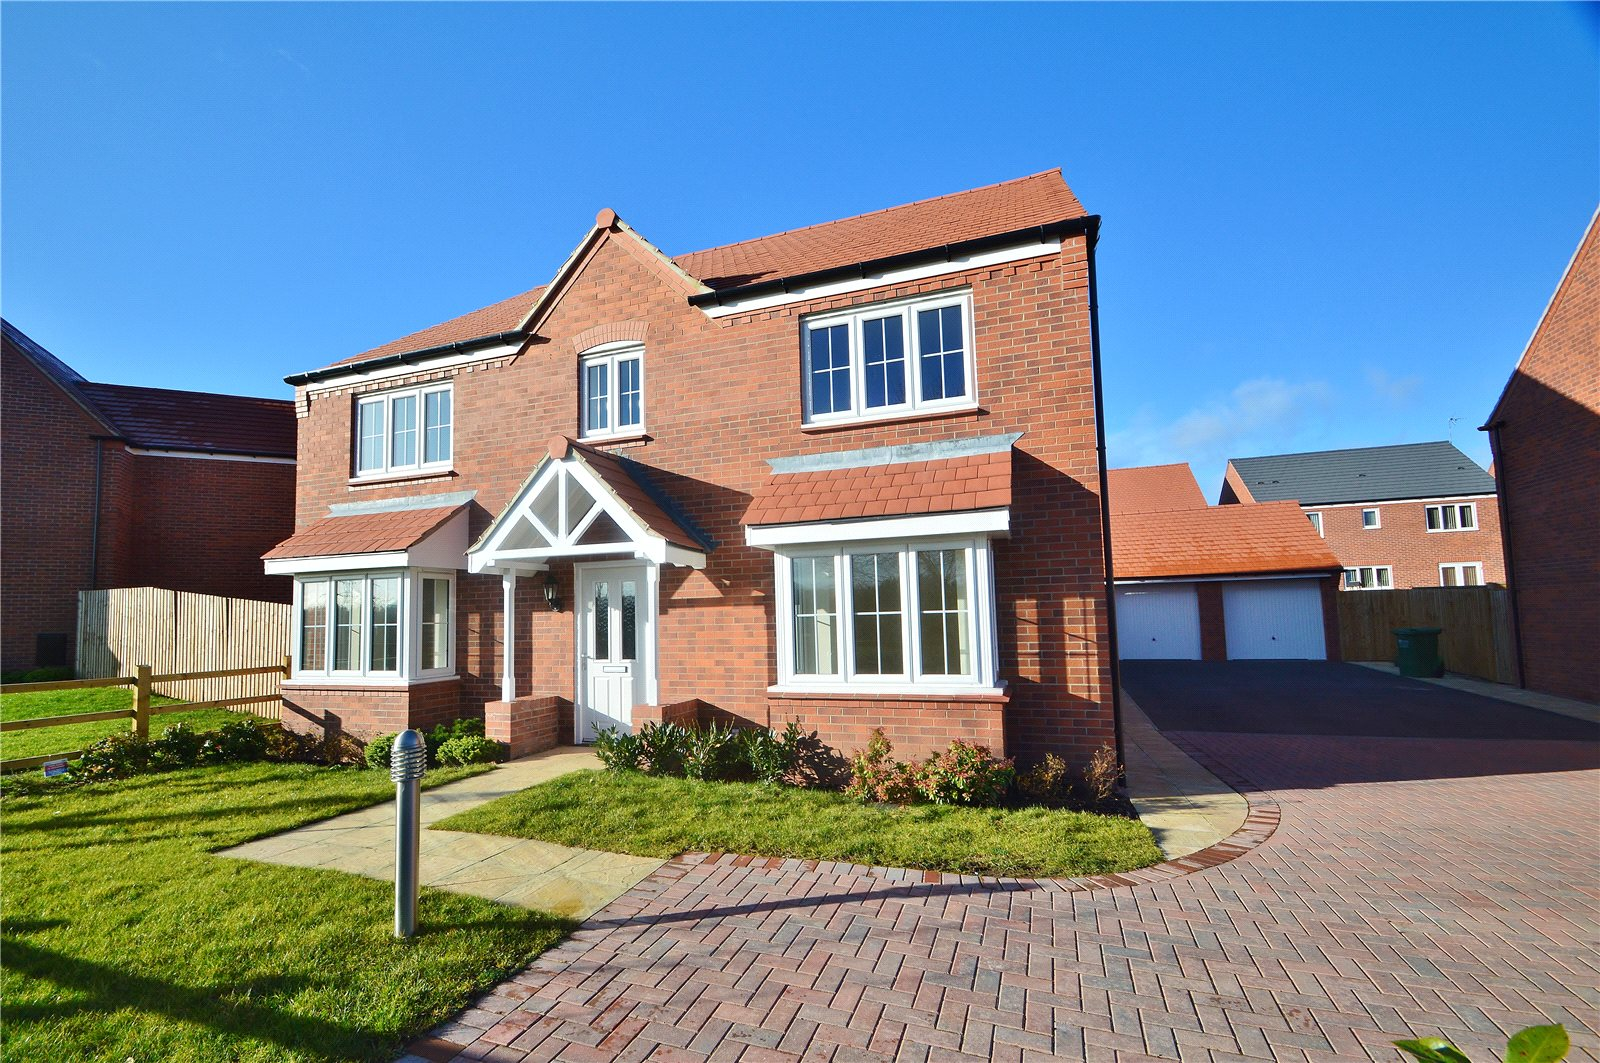 5 Bedrooms Detached House for sale in Plot 115, Stour Valley, Kidderminster, Worcestershire, DY11